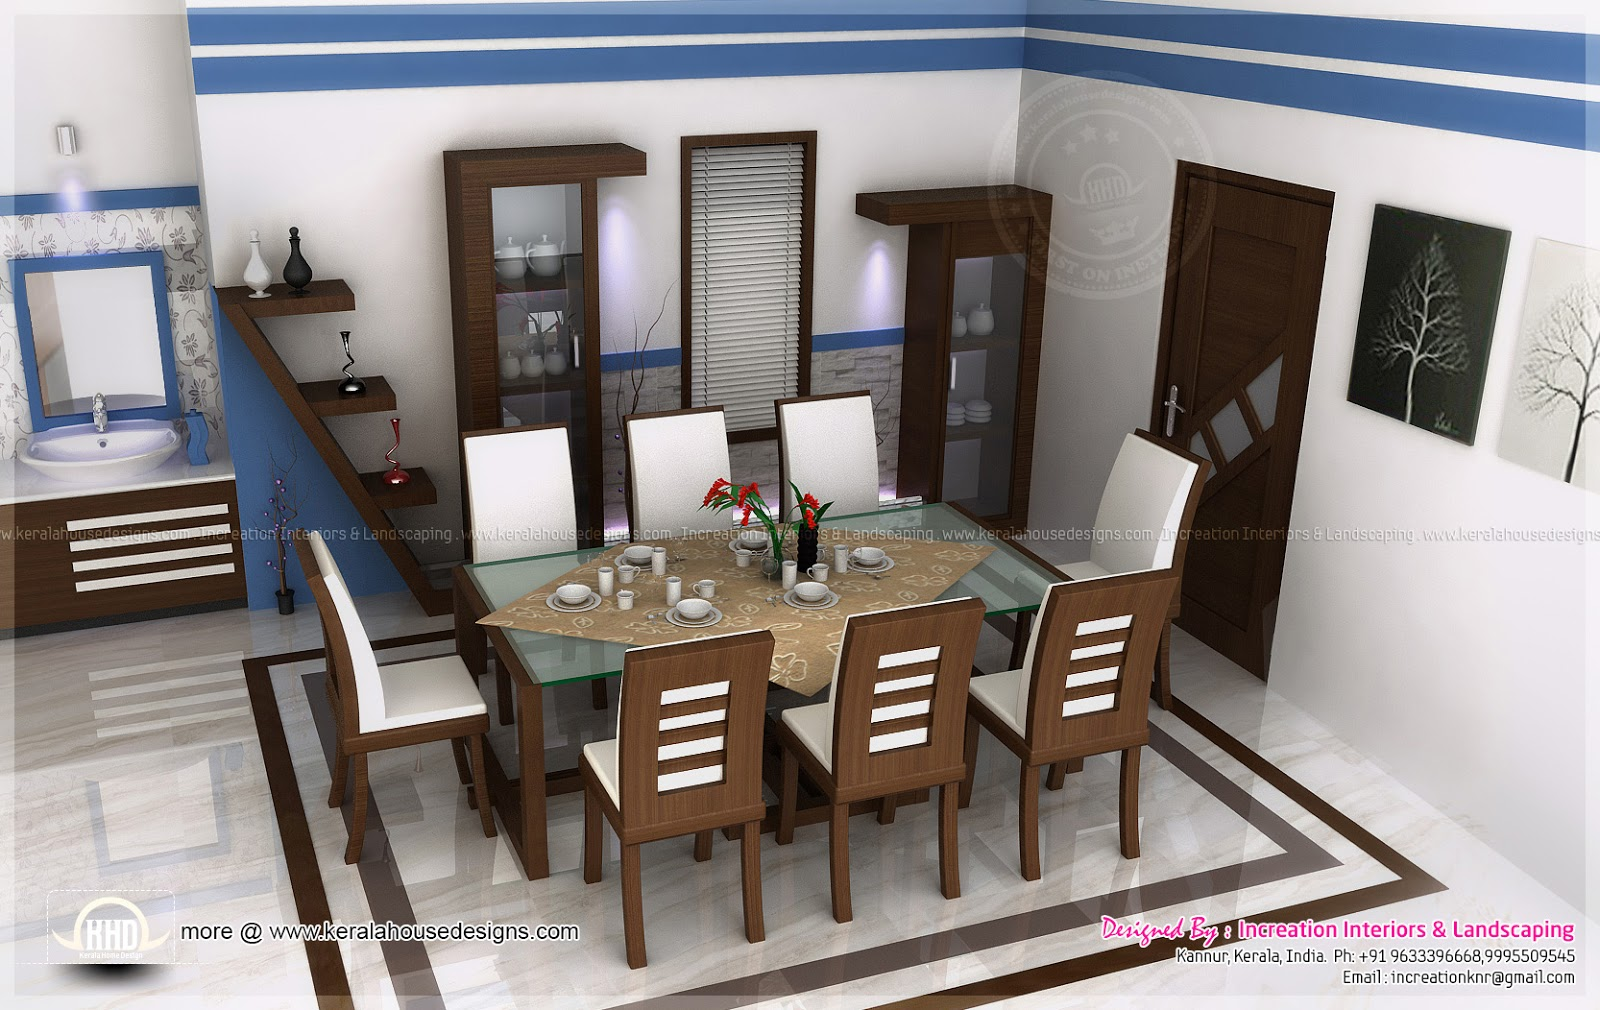 House interior ideas in 3d rendering kerala home design for 3 bedroom house interior design